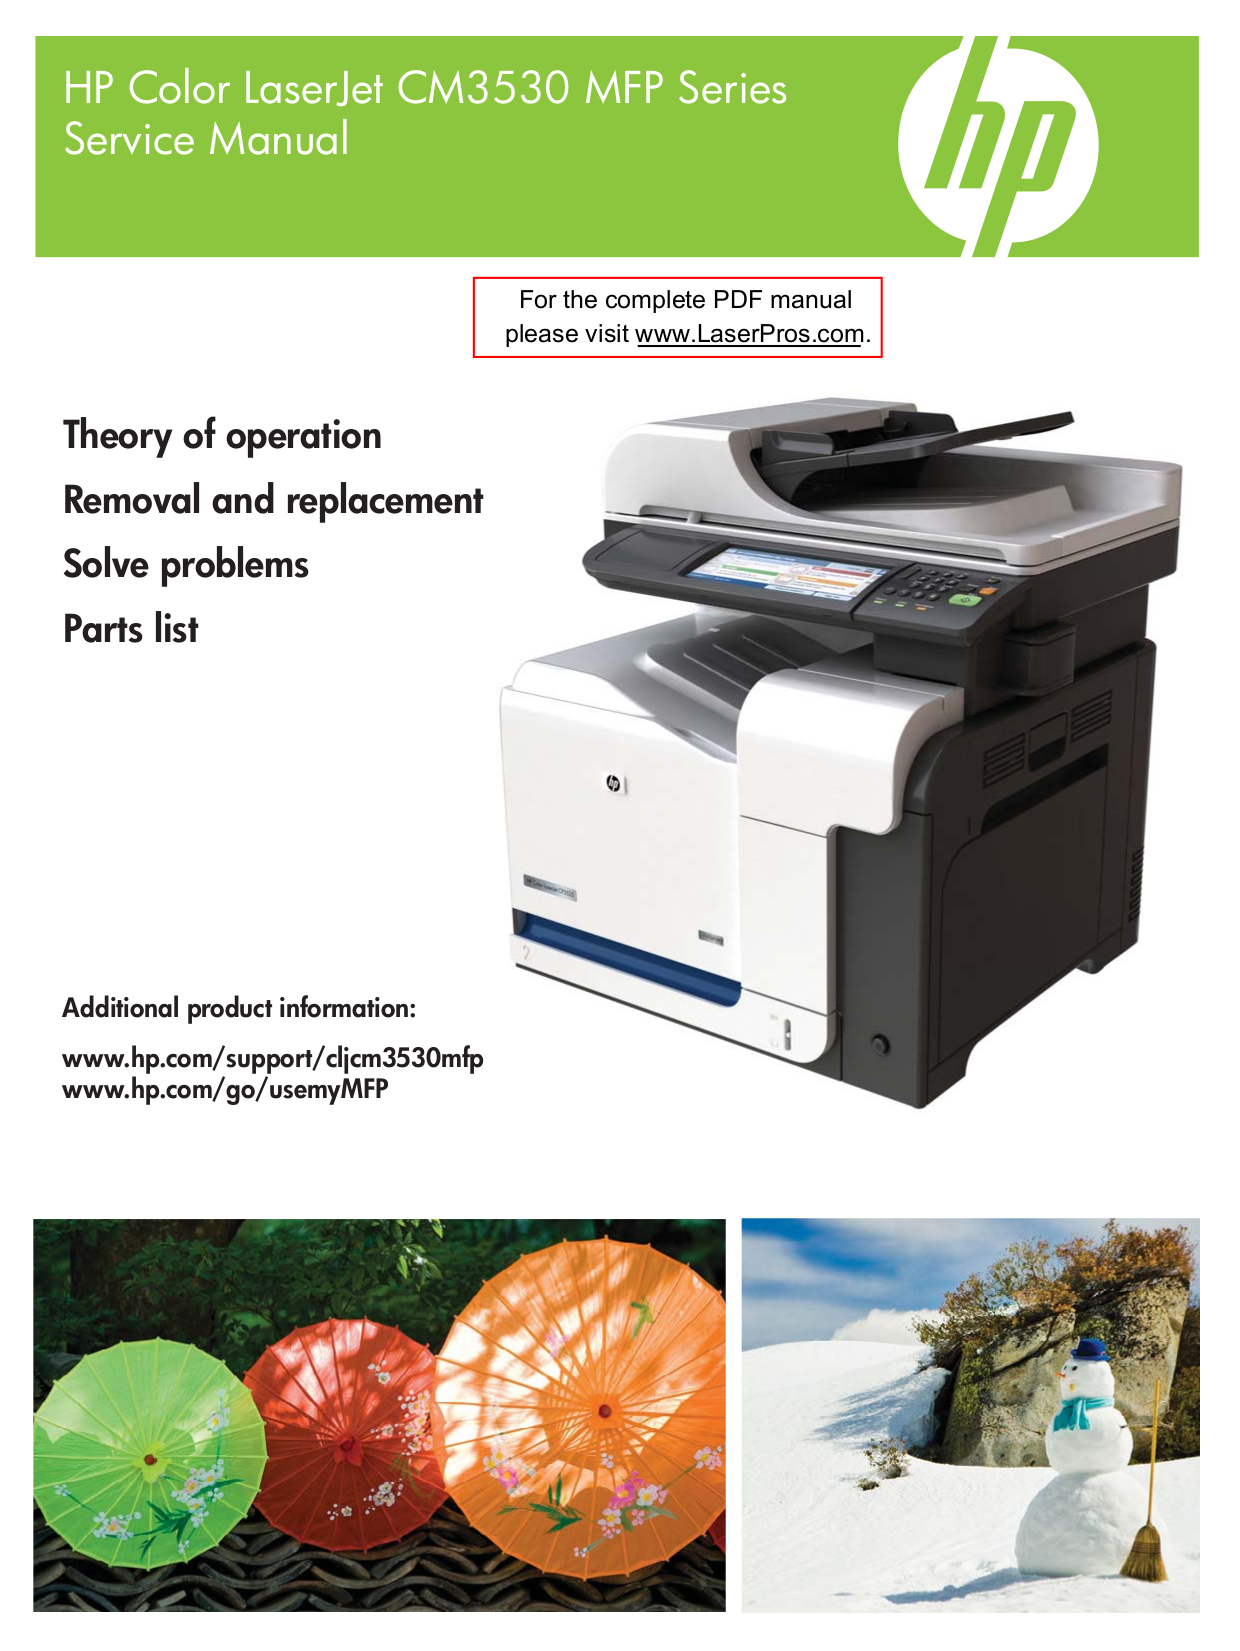 pdf for HP Multifunction Printer Laserjet,Color Laserjet CM3530mfp manual